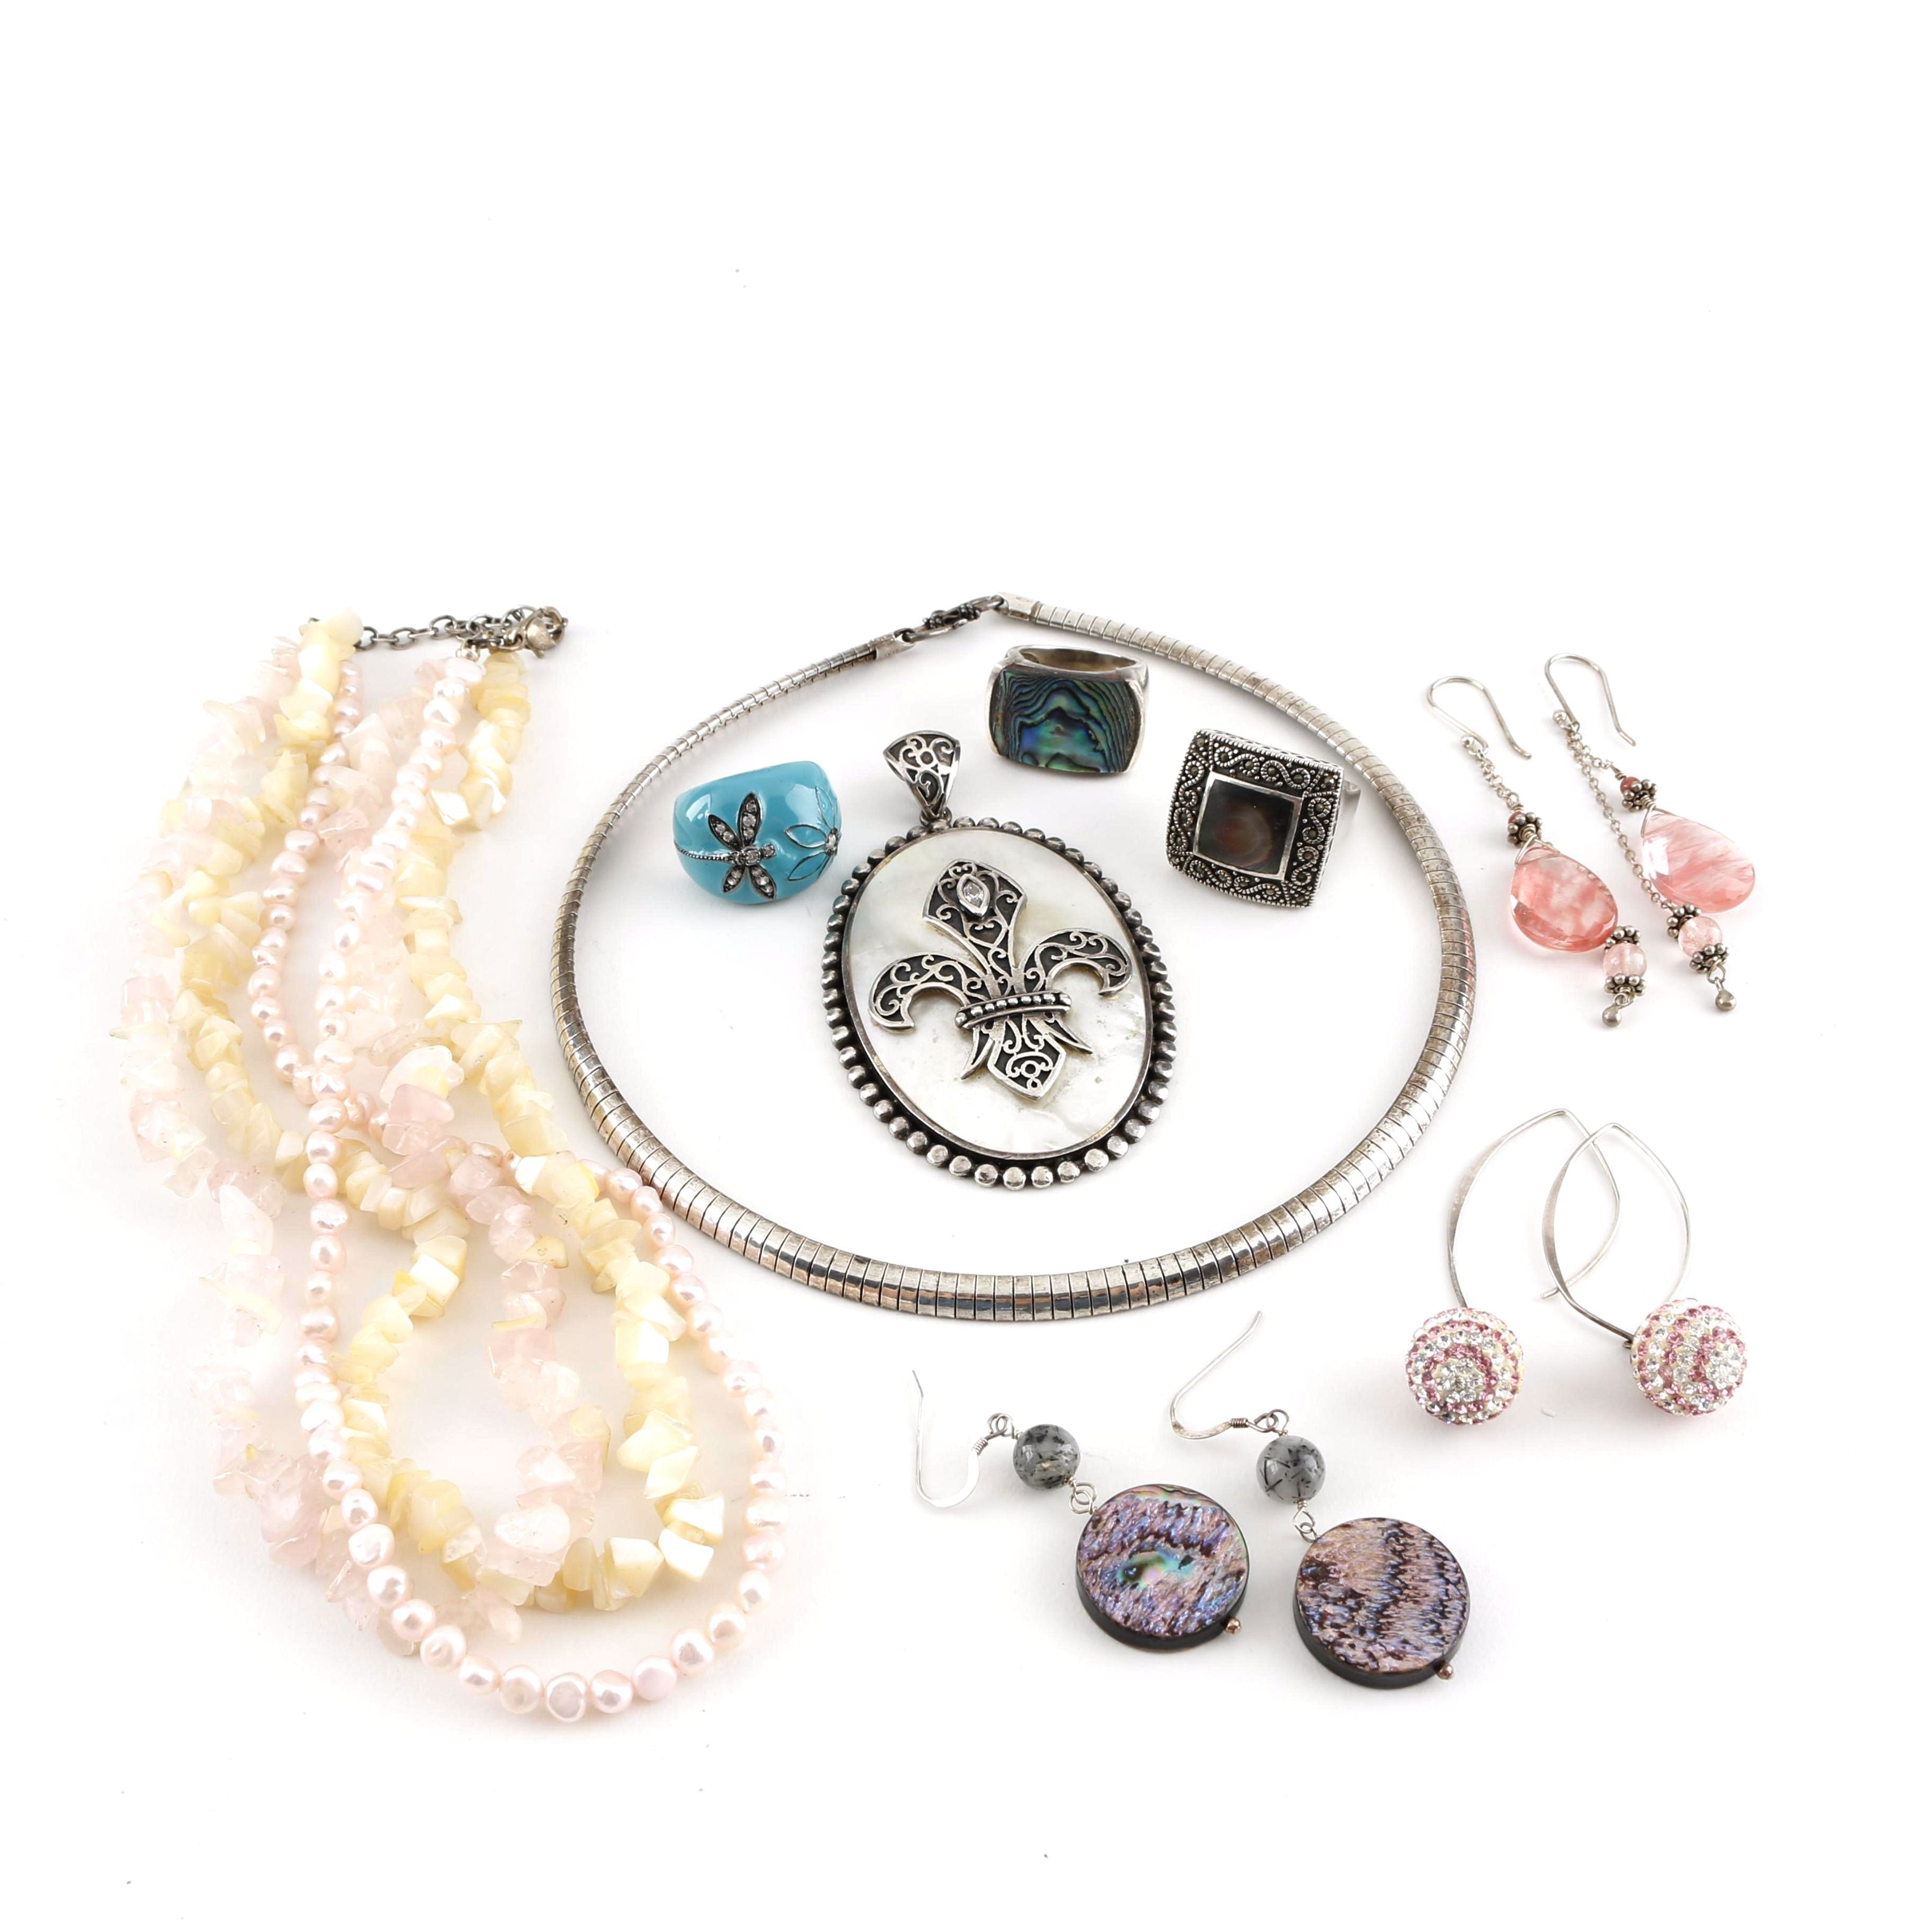 Assortment of Sterling Silver Jewelry Featuring Mother of Pearl and Abalone